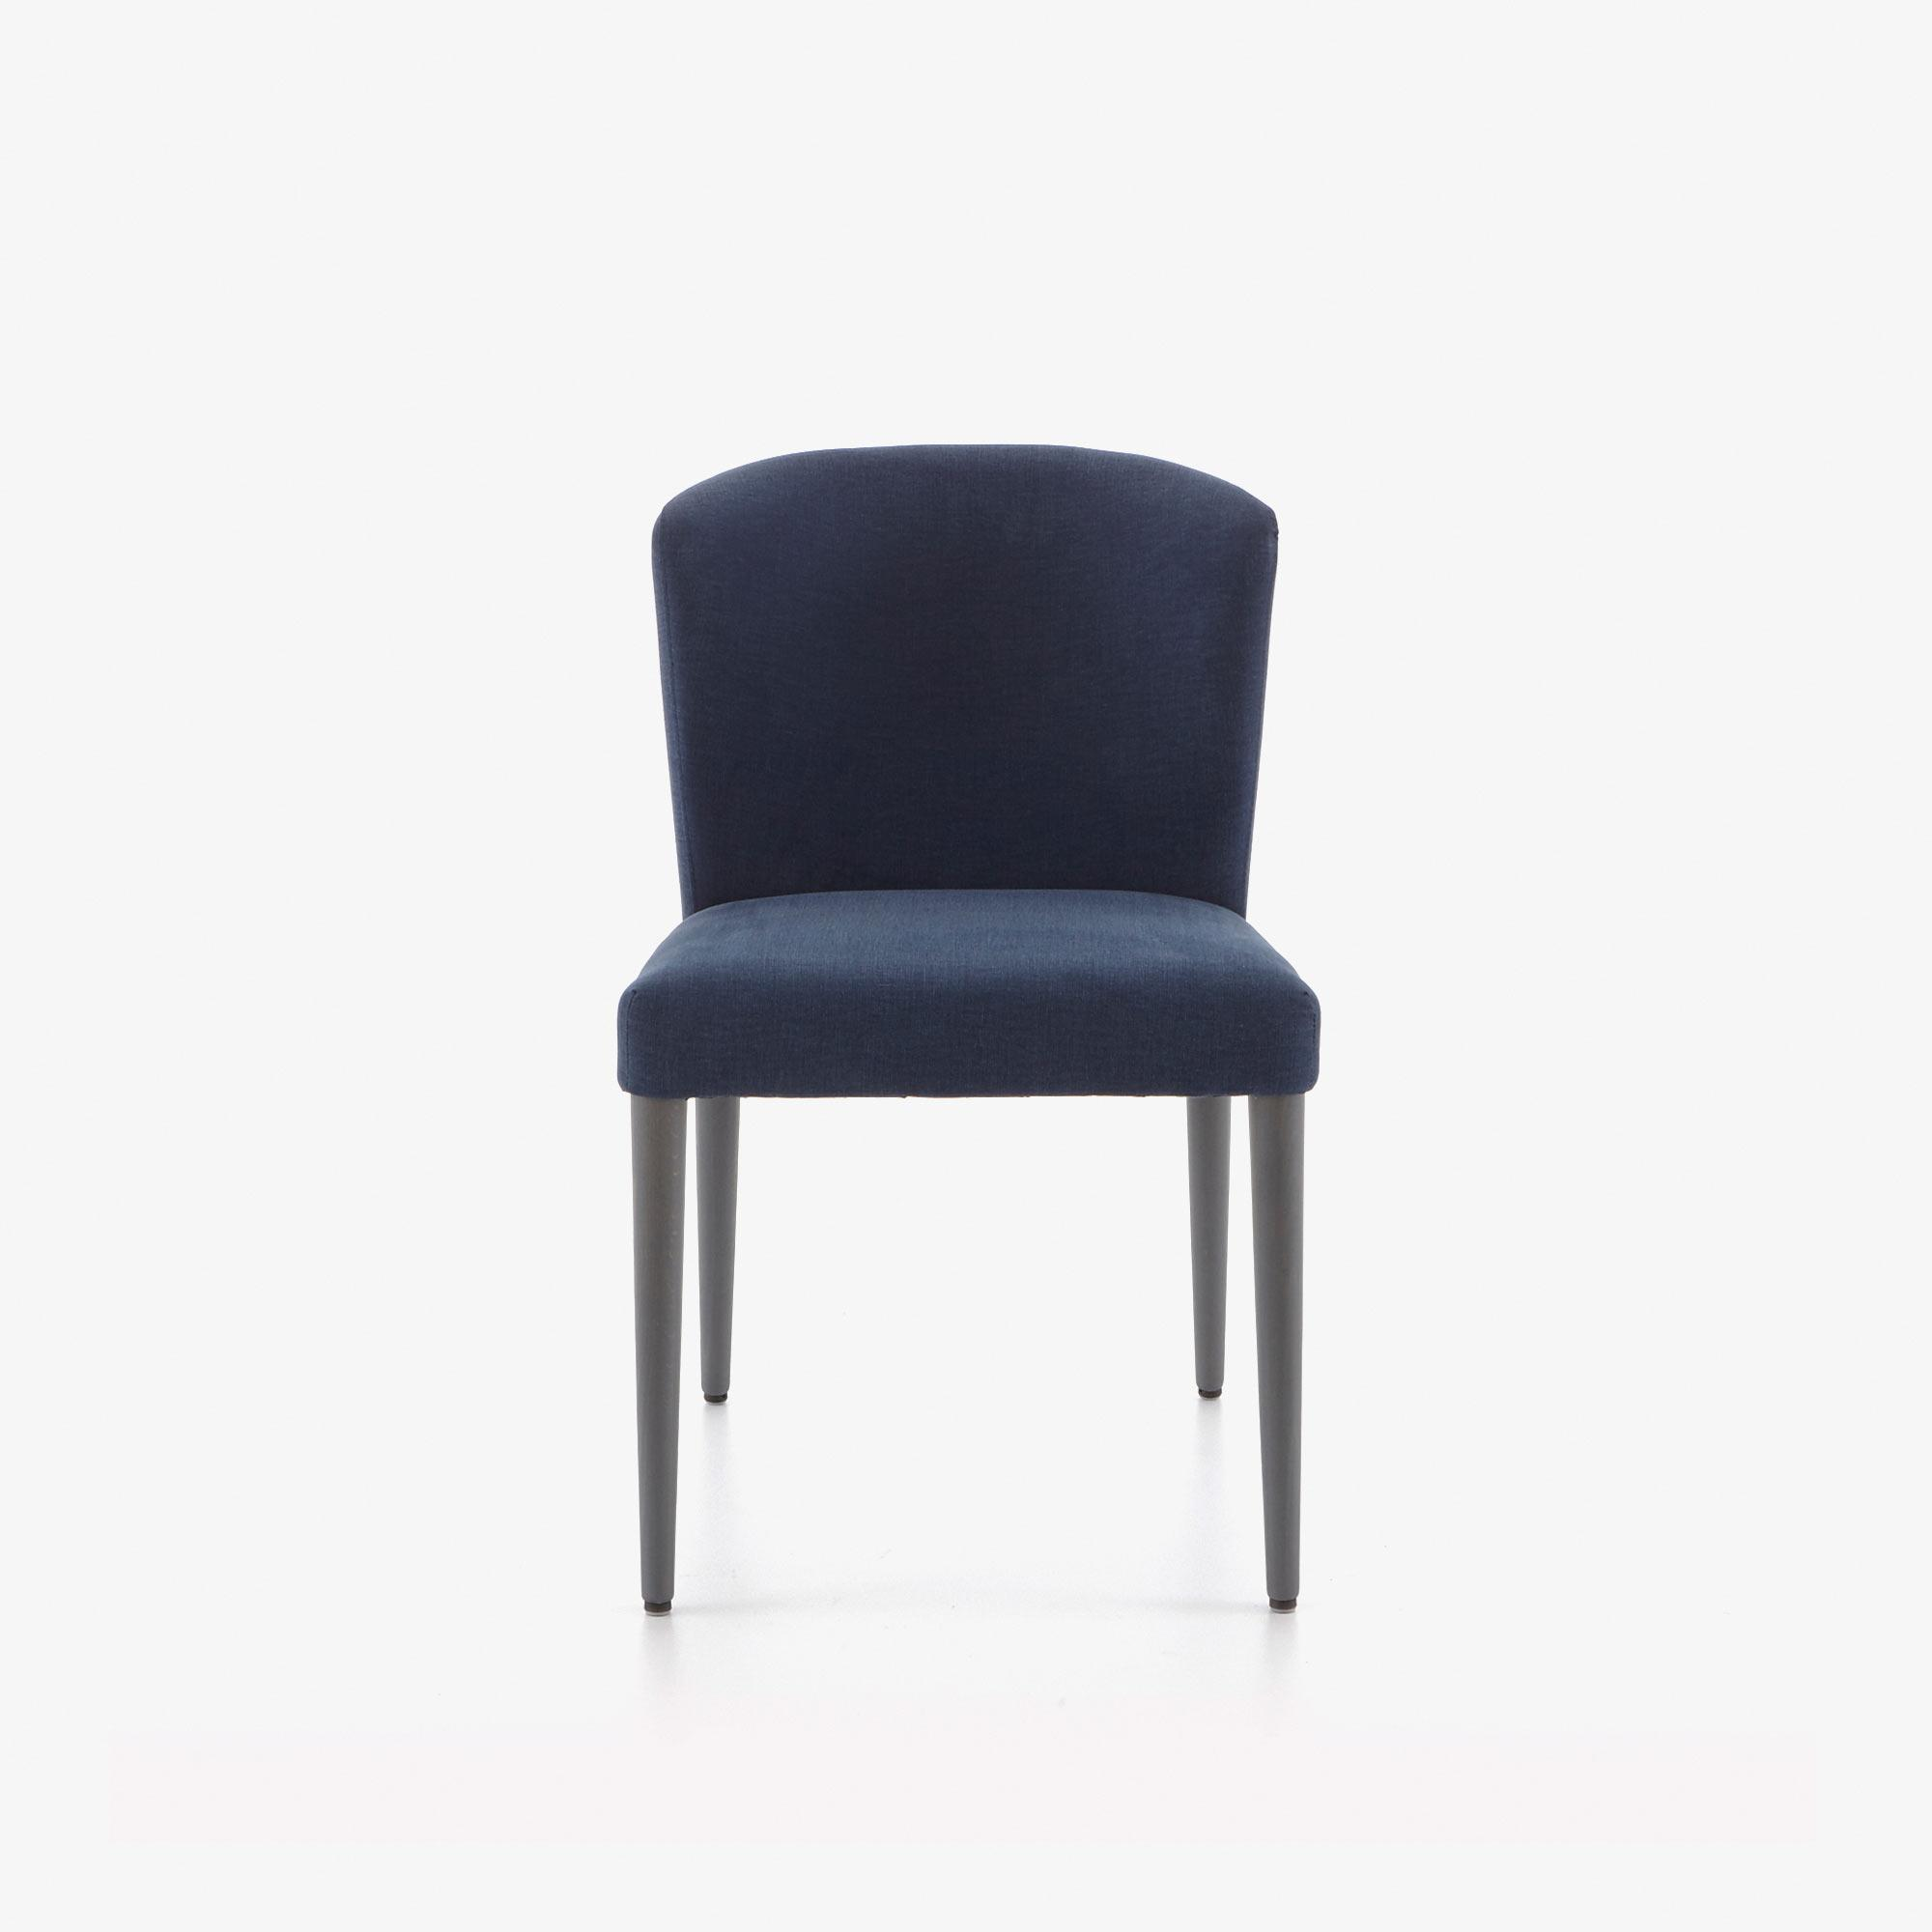 SET OF 2 DINING CHAIRS - CIRCA FABRIC-BLEU NUIT ANTHRACITE-STAINED BEECH LEGS Ligne Roset